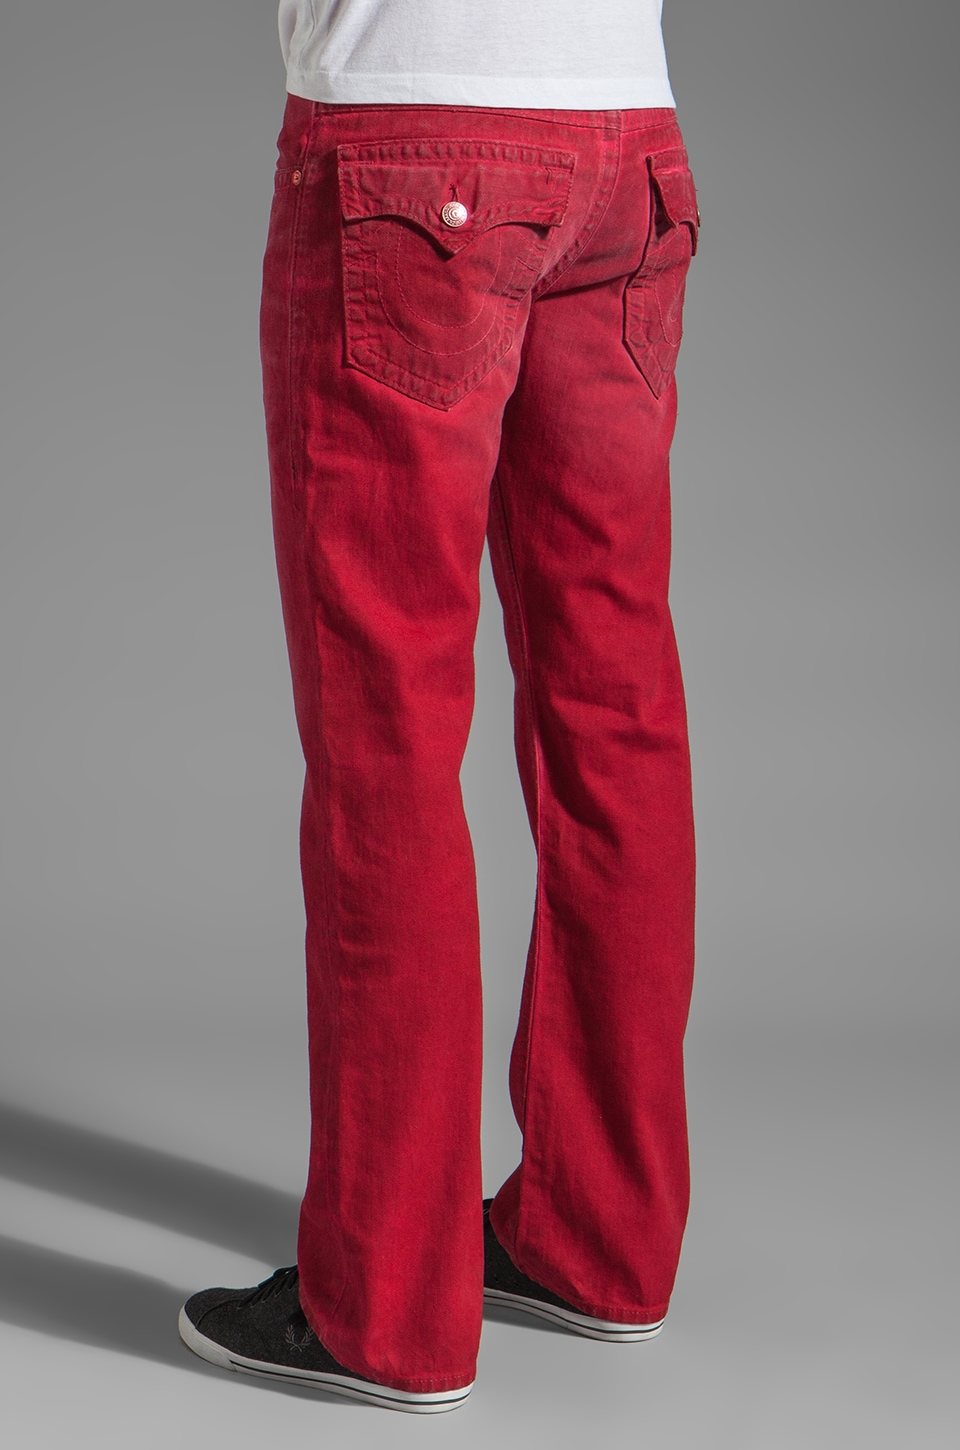 True Religion Ricky Straight Leg in Red